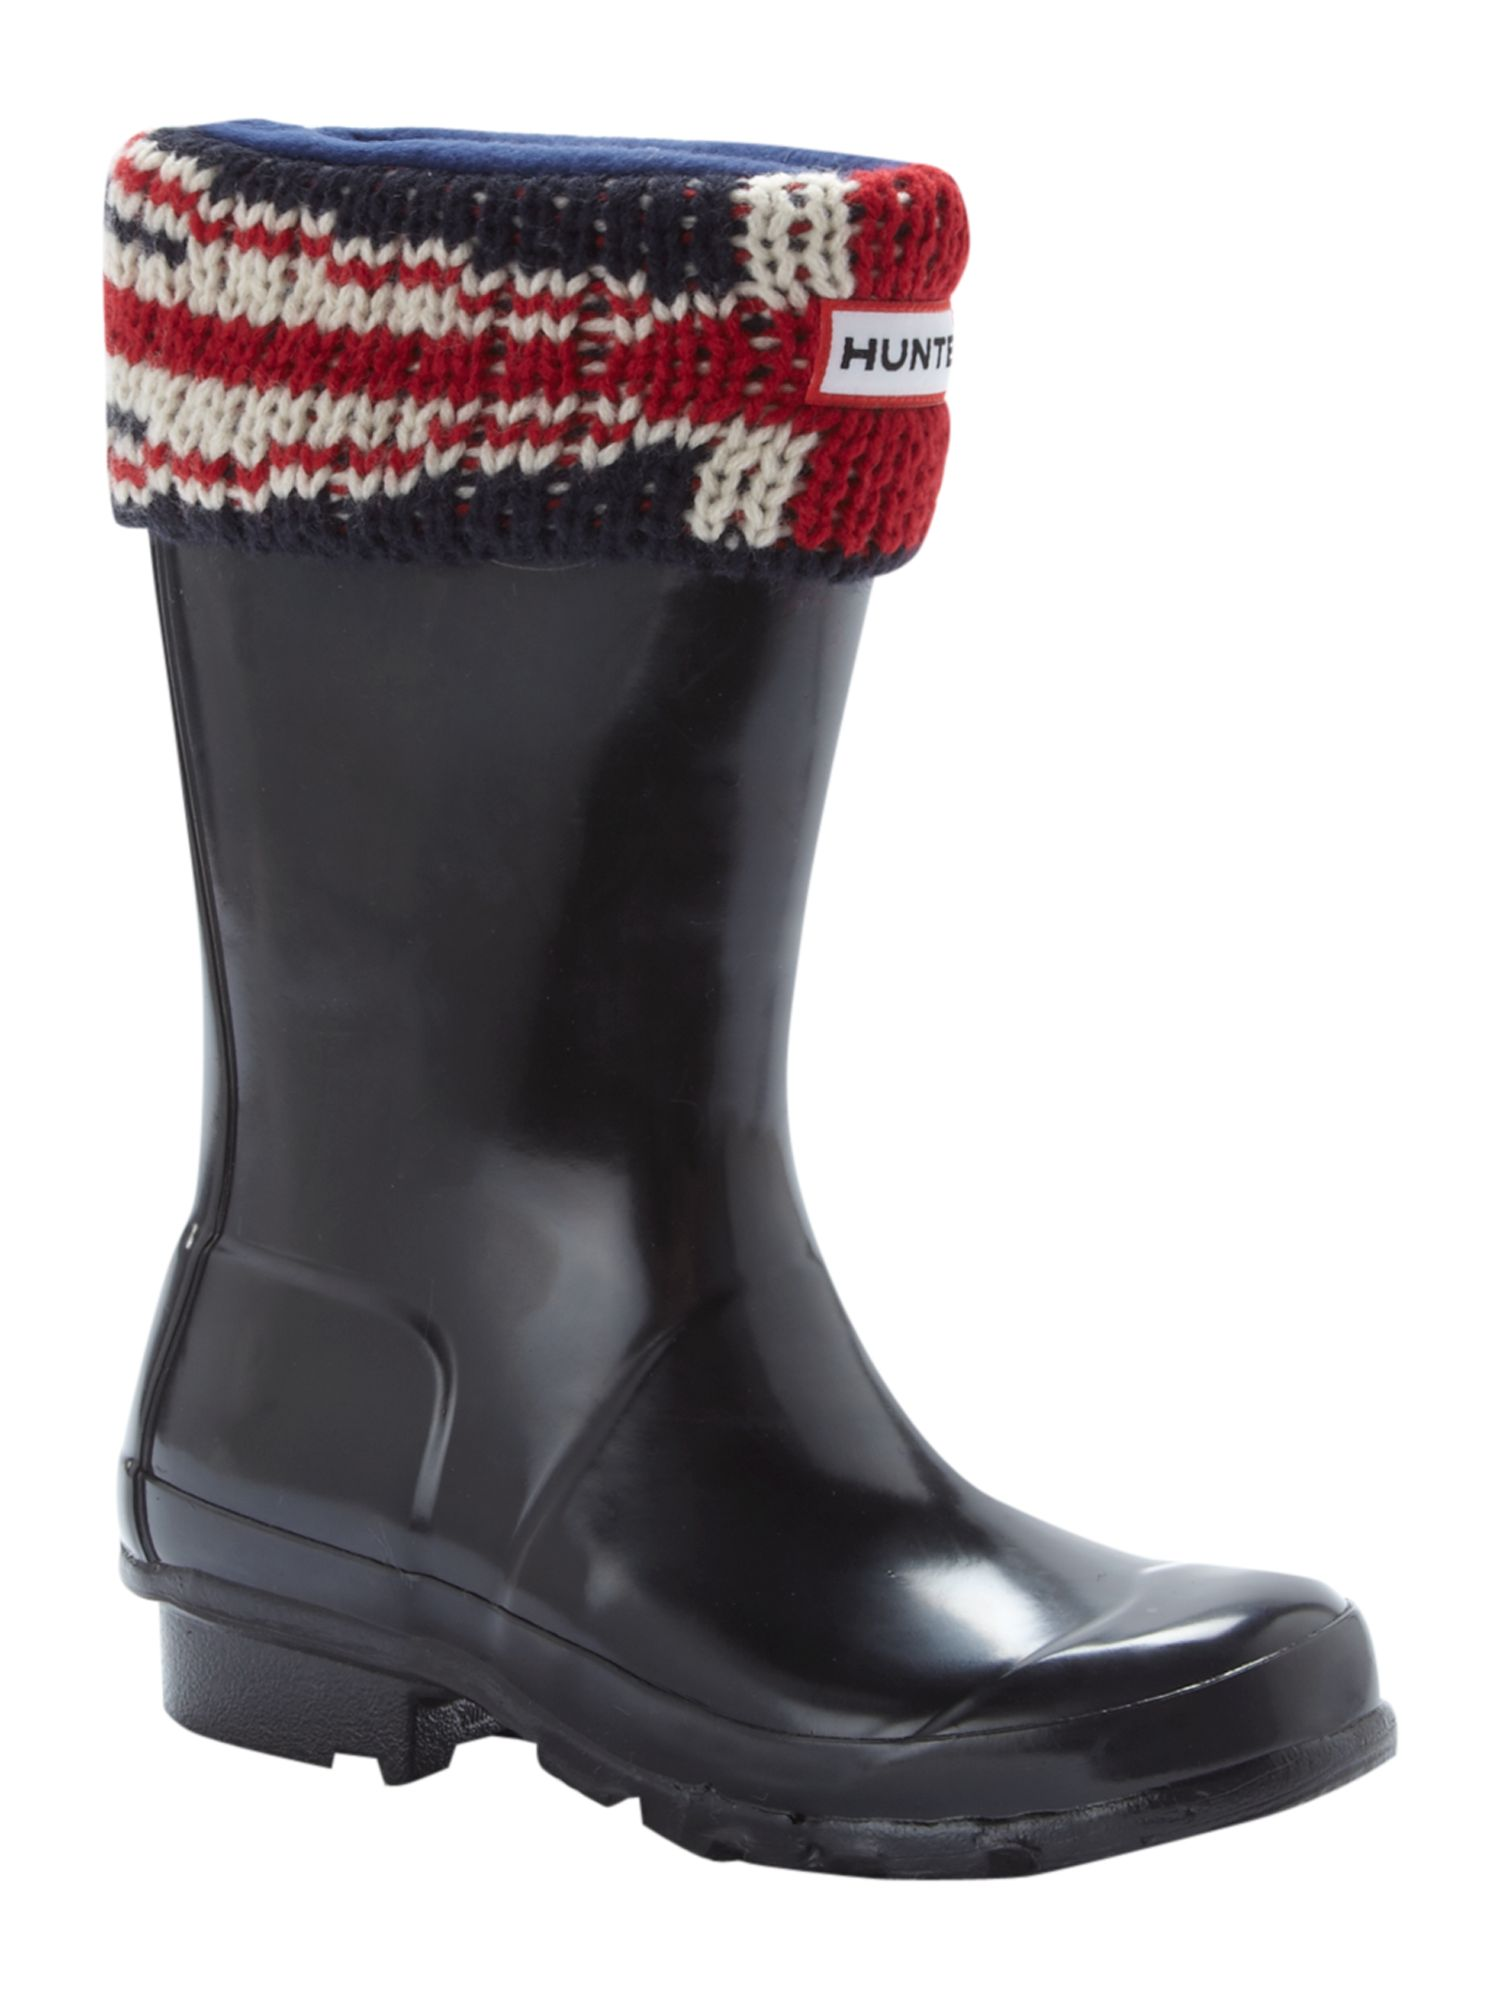 Union Jack printed welly socks